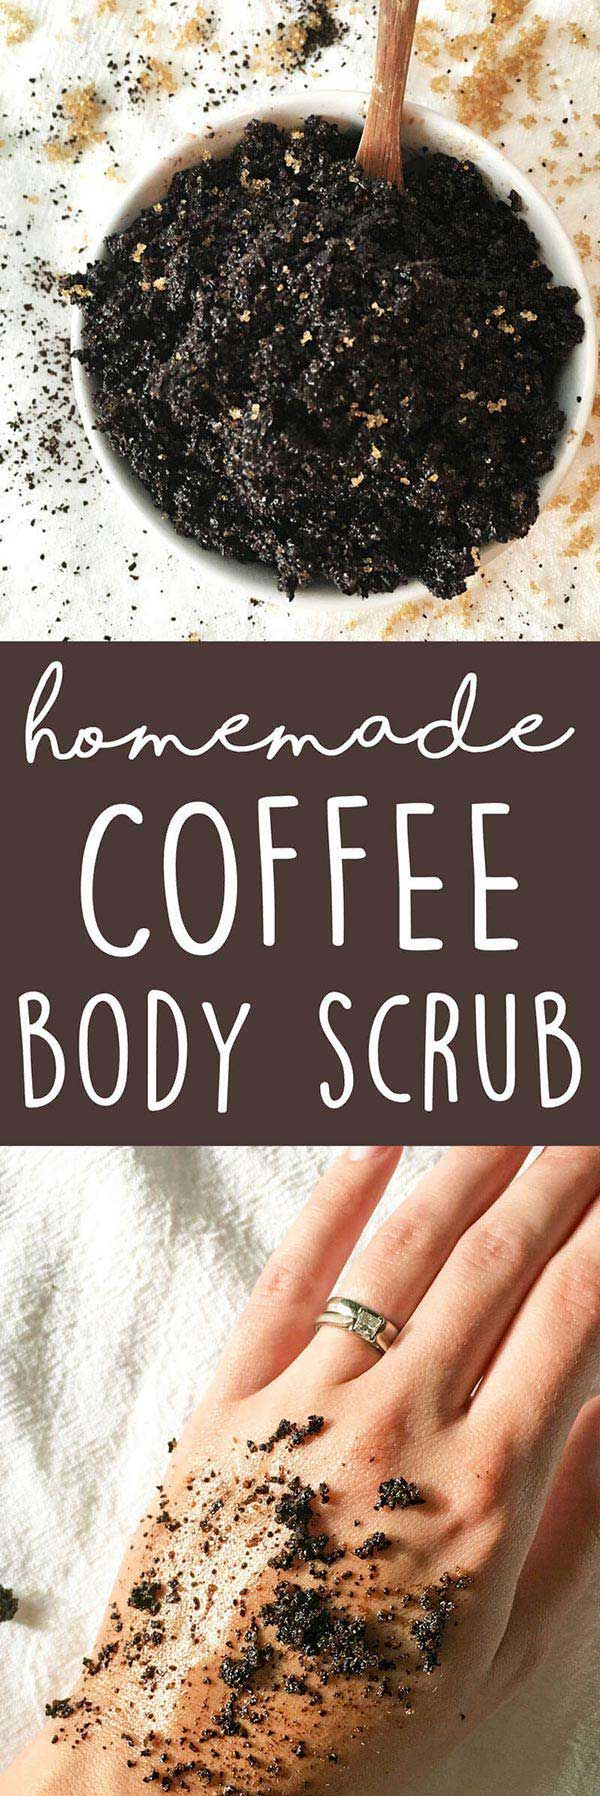 DIY Coffee Body Scrub - this 3-ingredient homemade body scrub recipe is great for dry skin & exfoliating. LOVE it! | karissasvegankitchen.com - Coffee Scrub